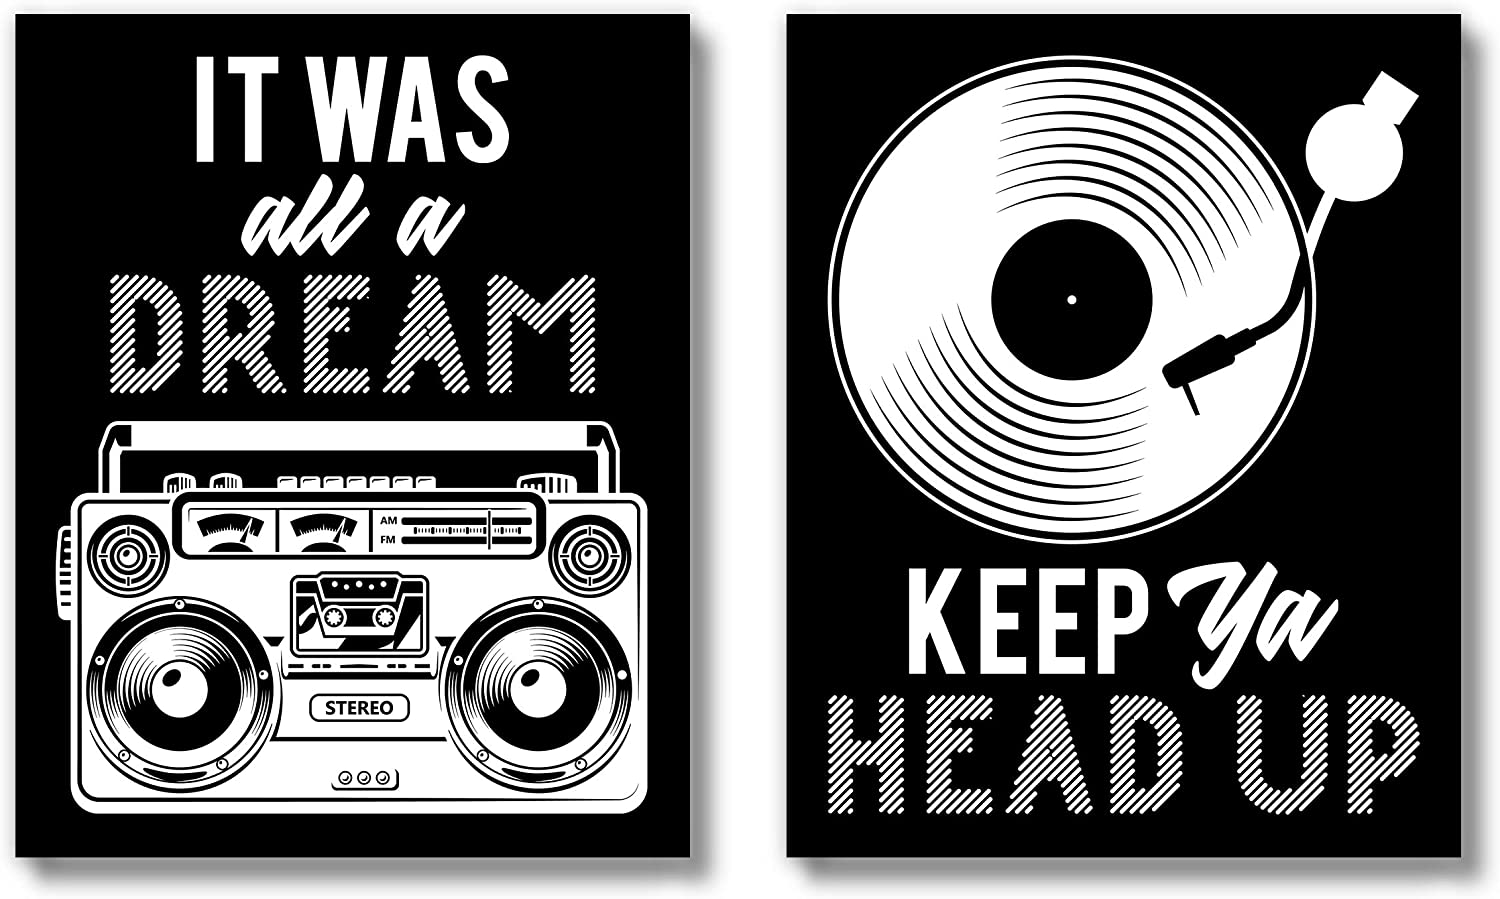 Brooke & Vine Hip Hop Music Posters Wall Art Prints (UNFRAMED 8 x 10 Set of 2) African American Rap Rapper Funny Bathroom Wall Decor, Restroom, Bedroom, Dorm, Office Signs Posters - It Was All A Dream Keep Ya Head Up